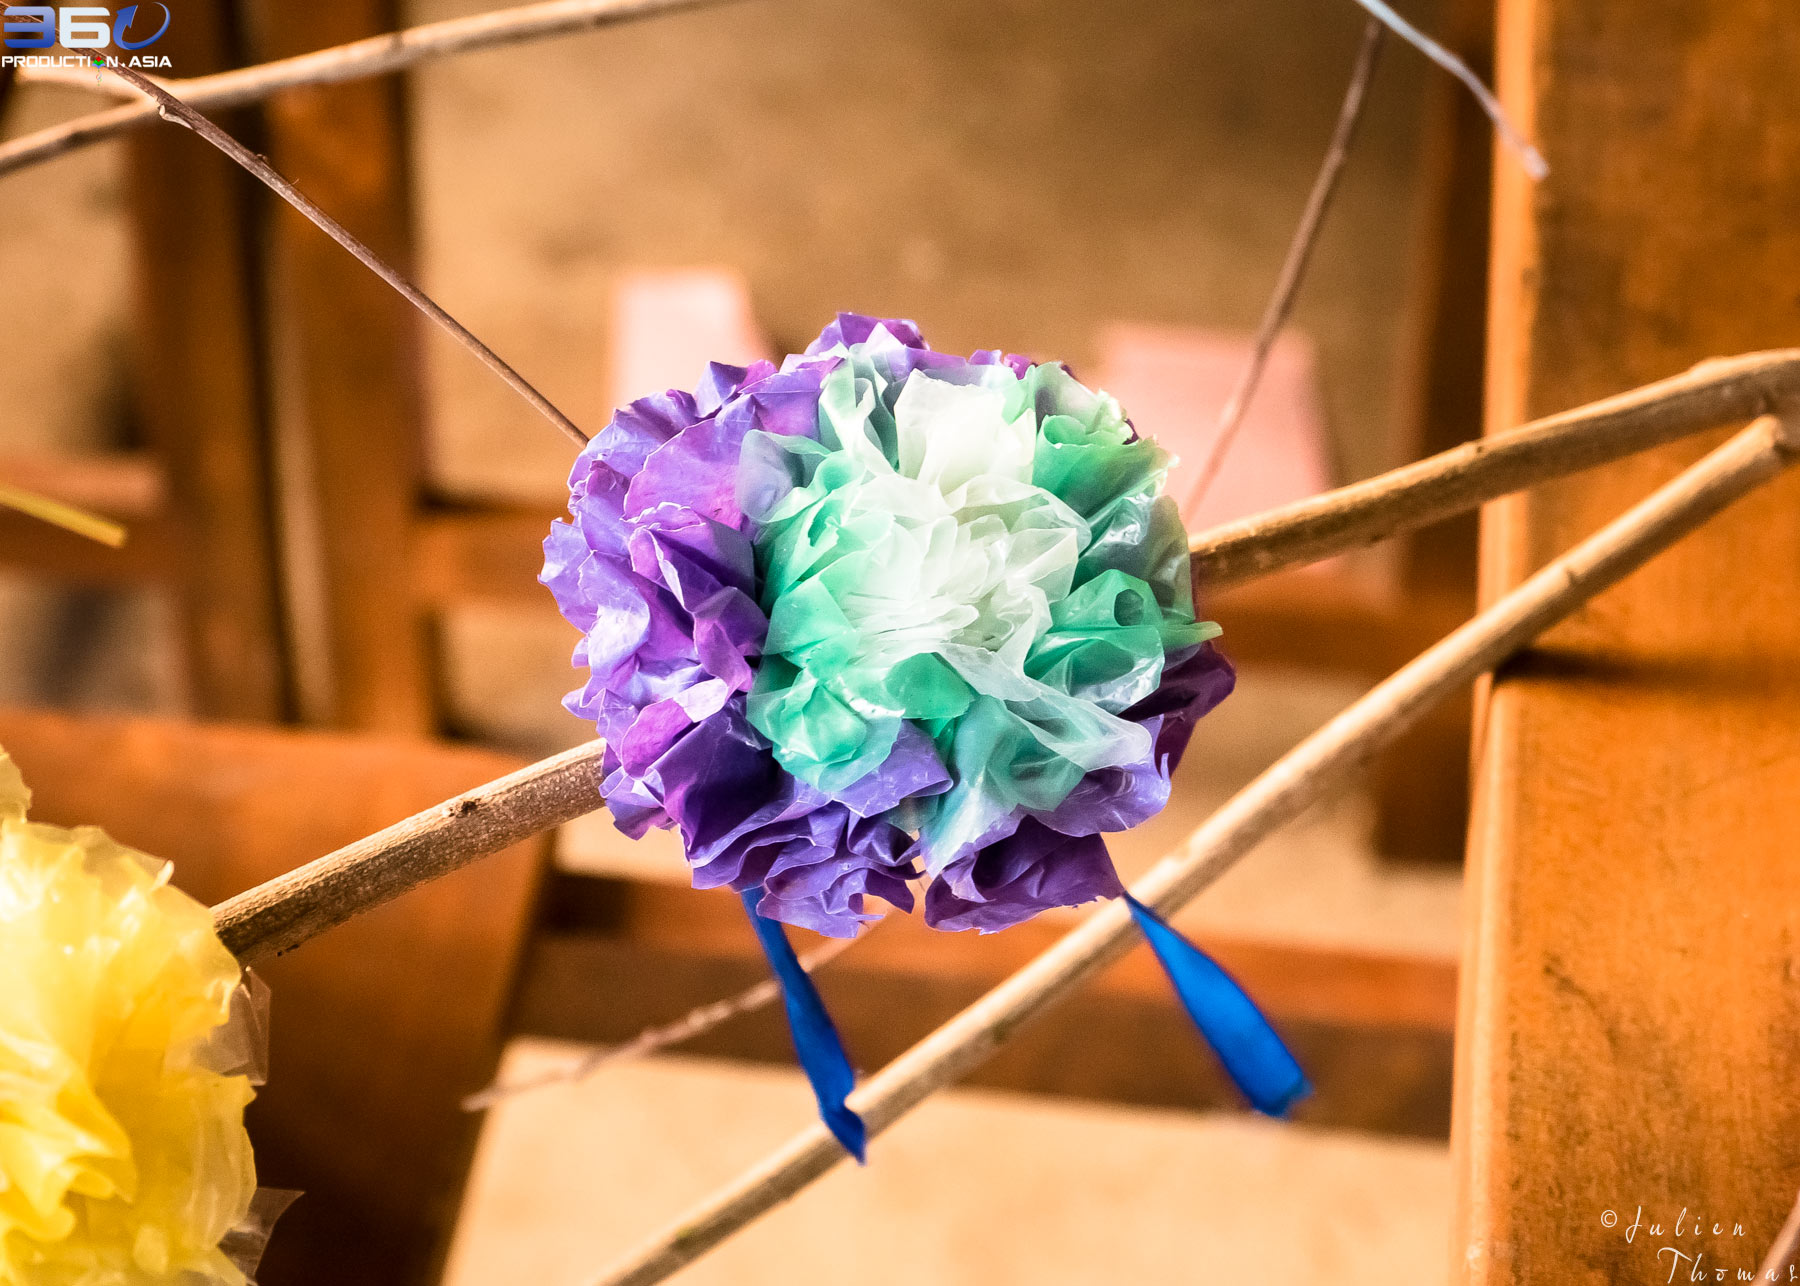 Homemade plastic waste flower created with recycled/upcycled plastic material - plastic bags during a craft and ecological children's course in Cambodia